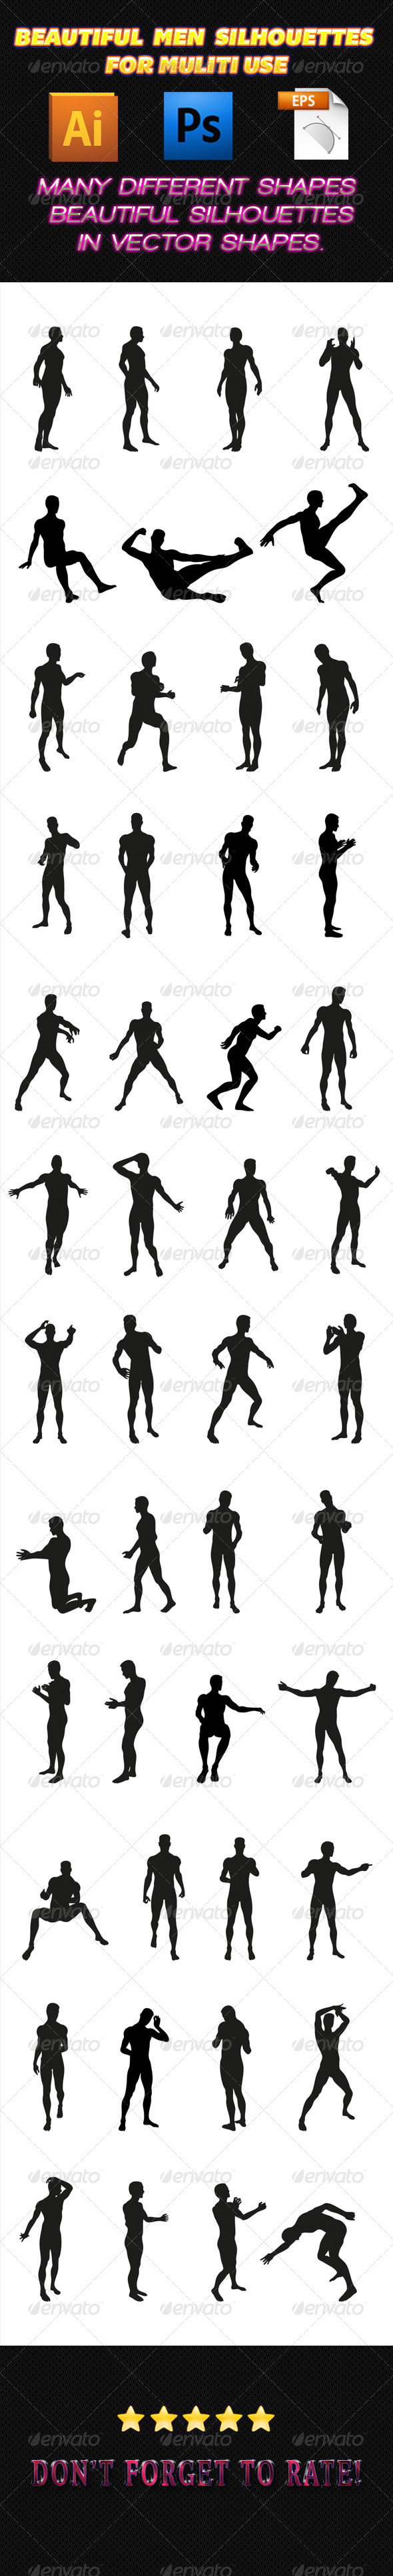 Men Silhouettes 01 - People Characters